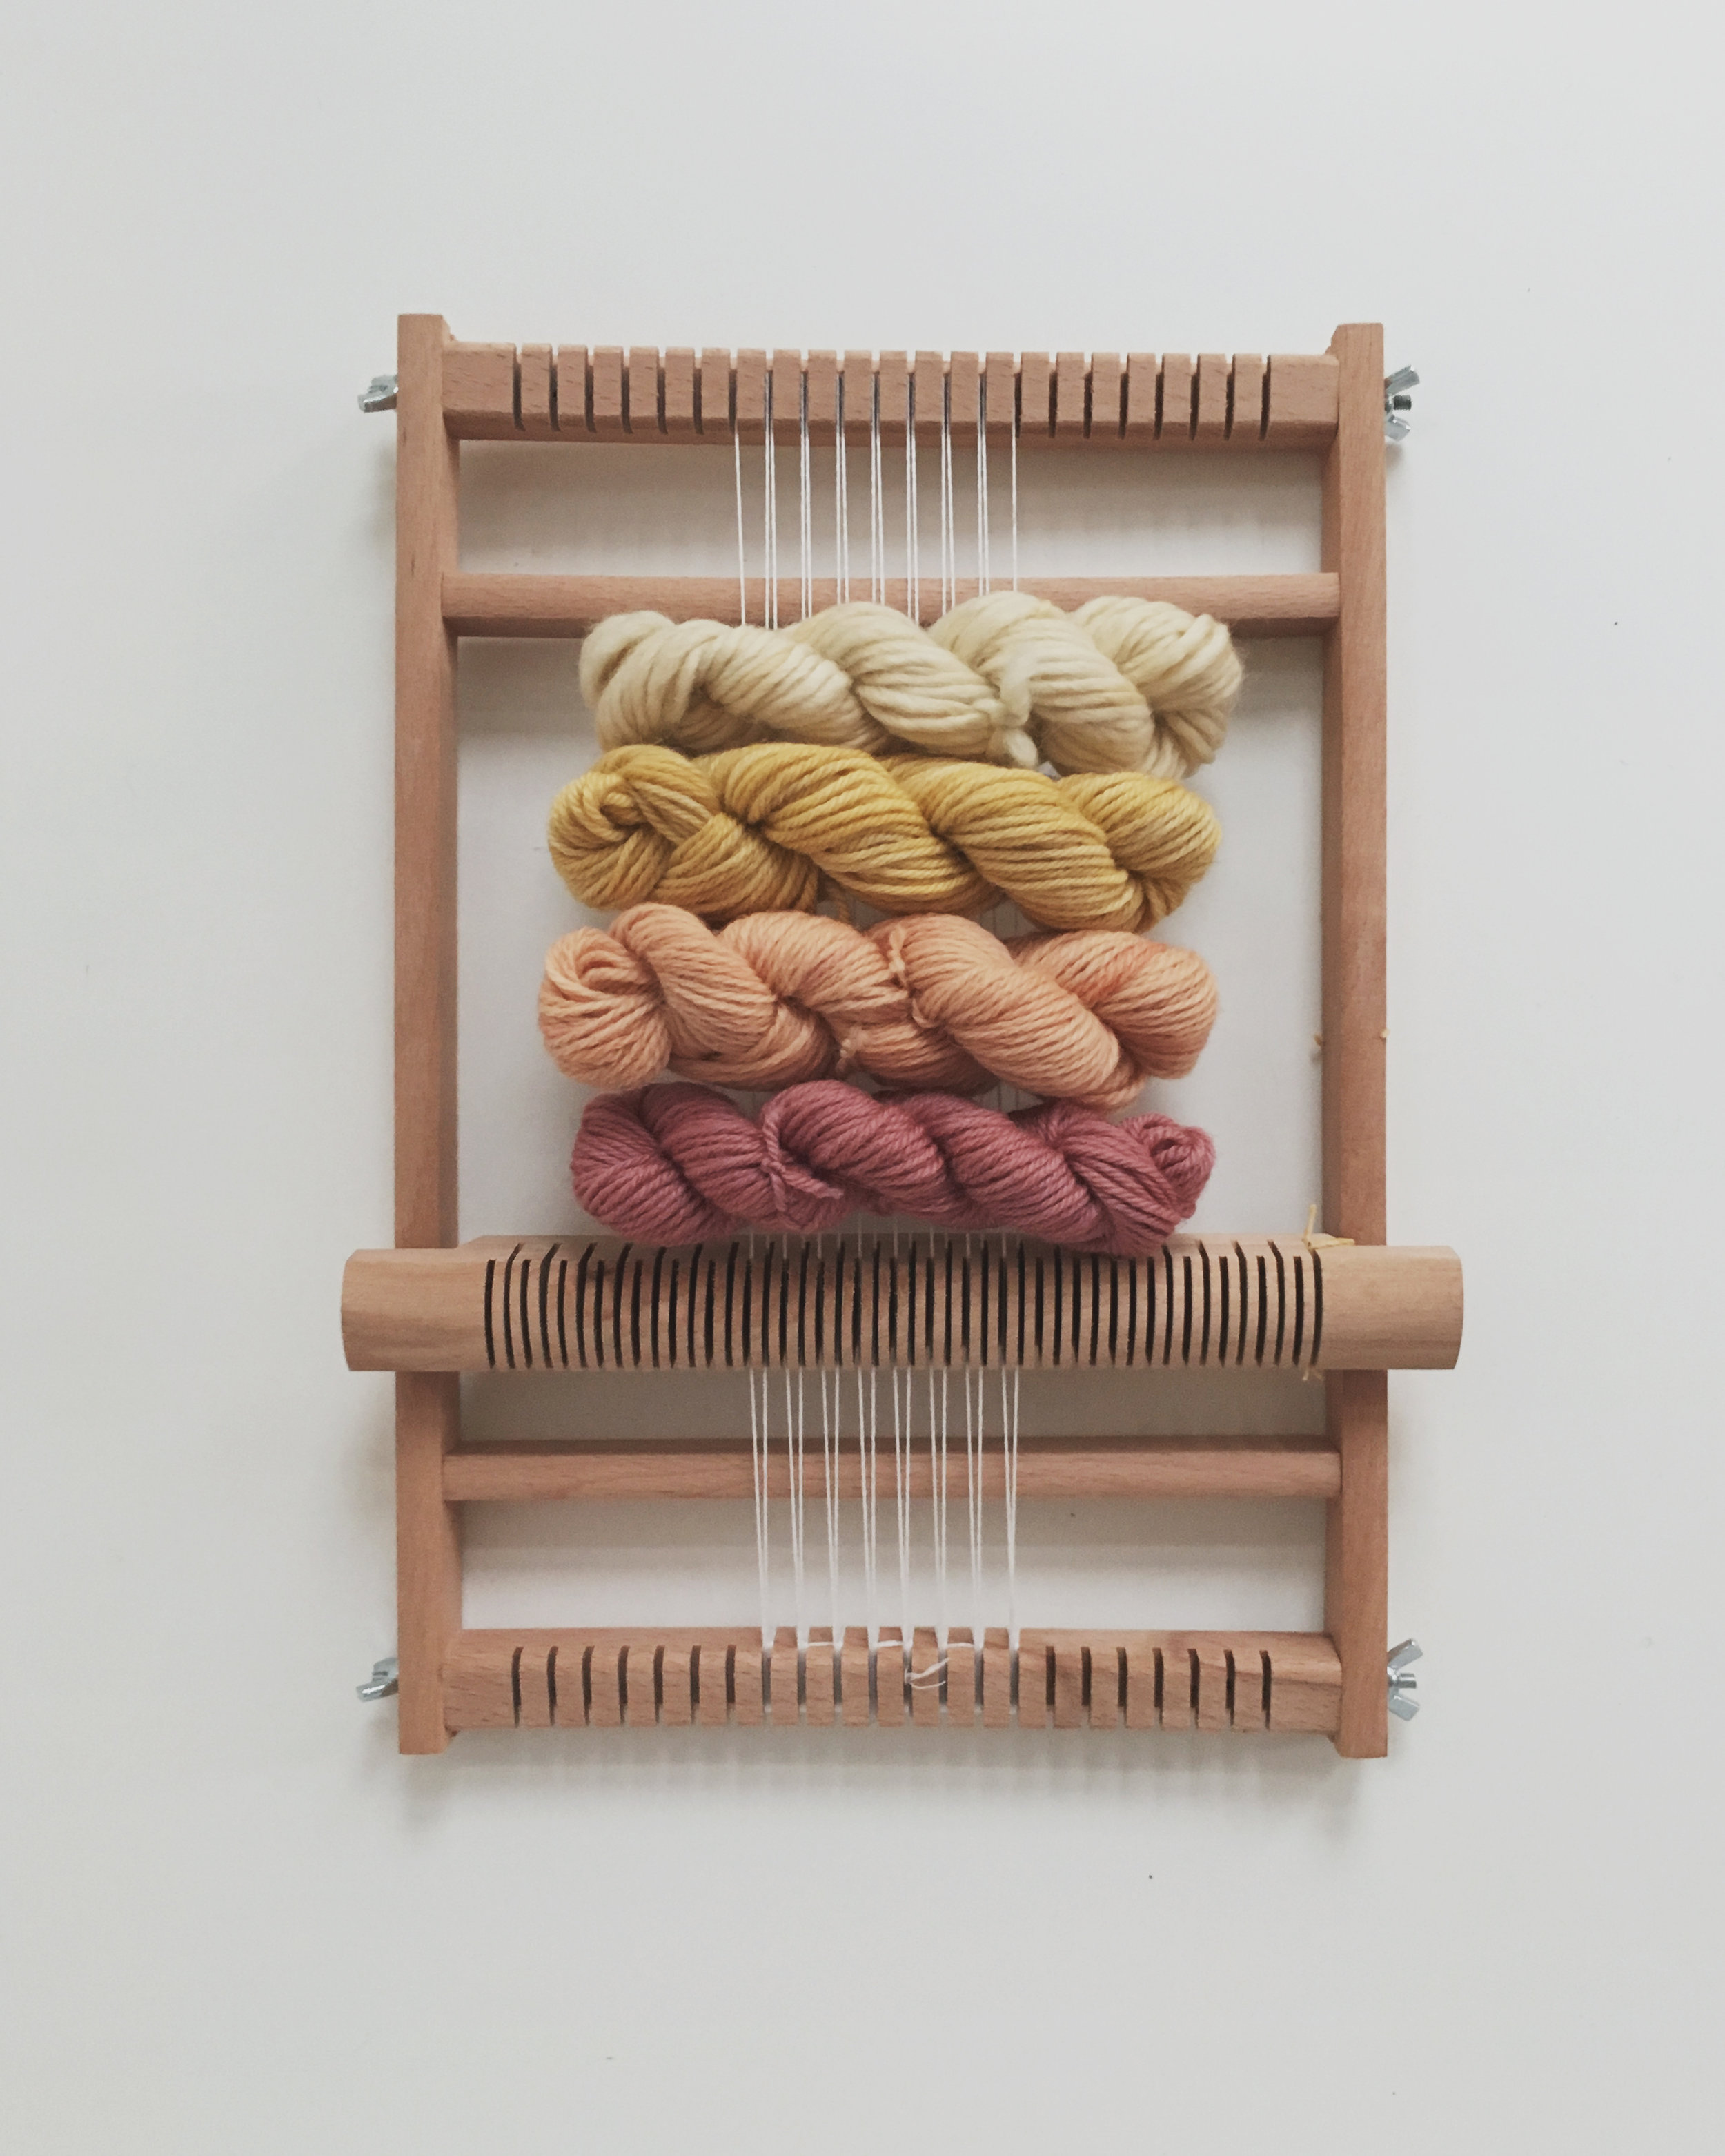 The best weaving sets for beginners are now live - loom and plant dyed yarn